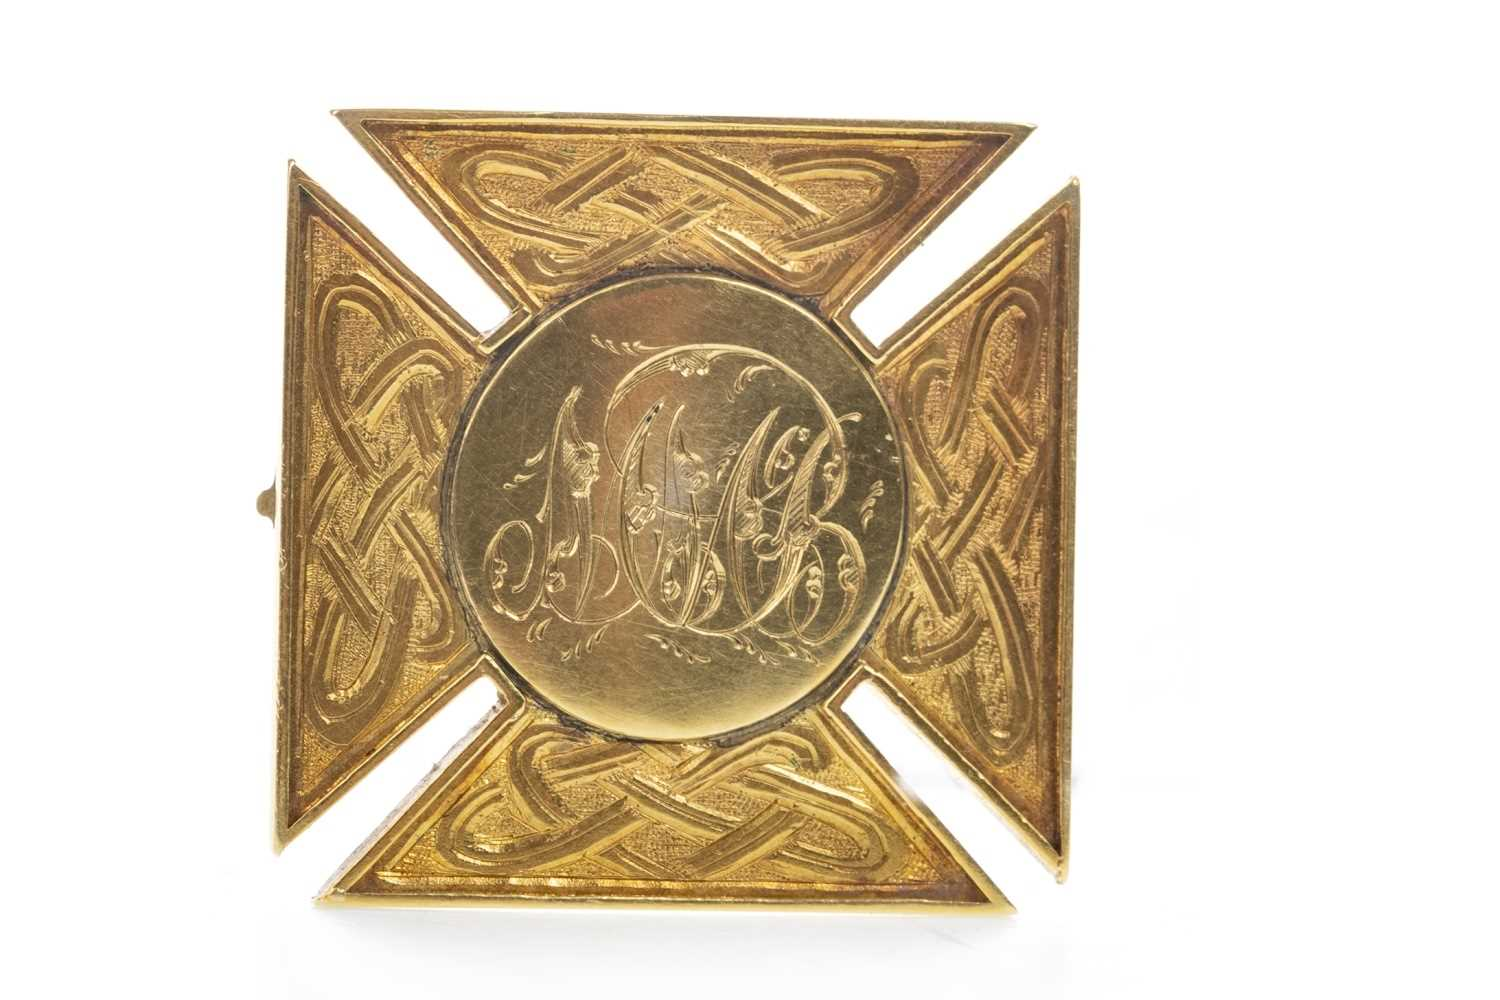 Lot 1715 - A VICTORIAN GOLD PLATED MEDAL WON BY J. MCBRIDE